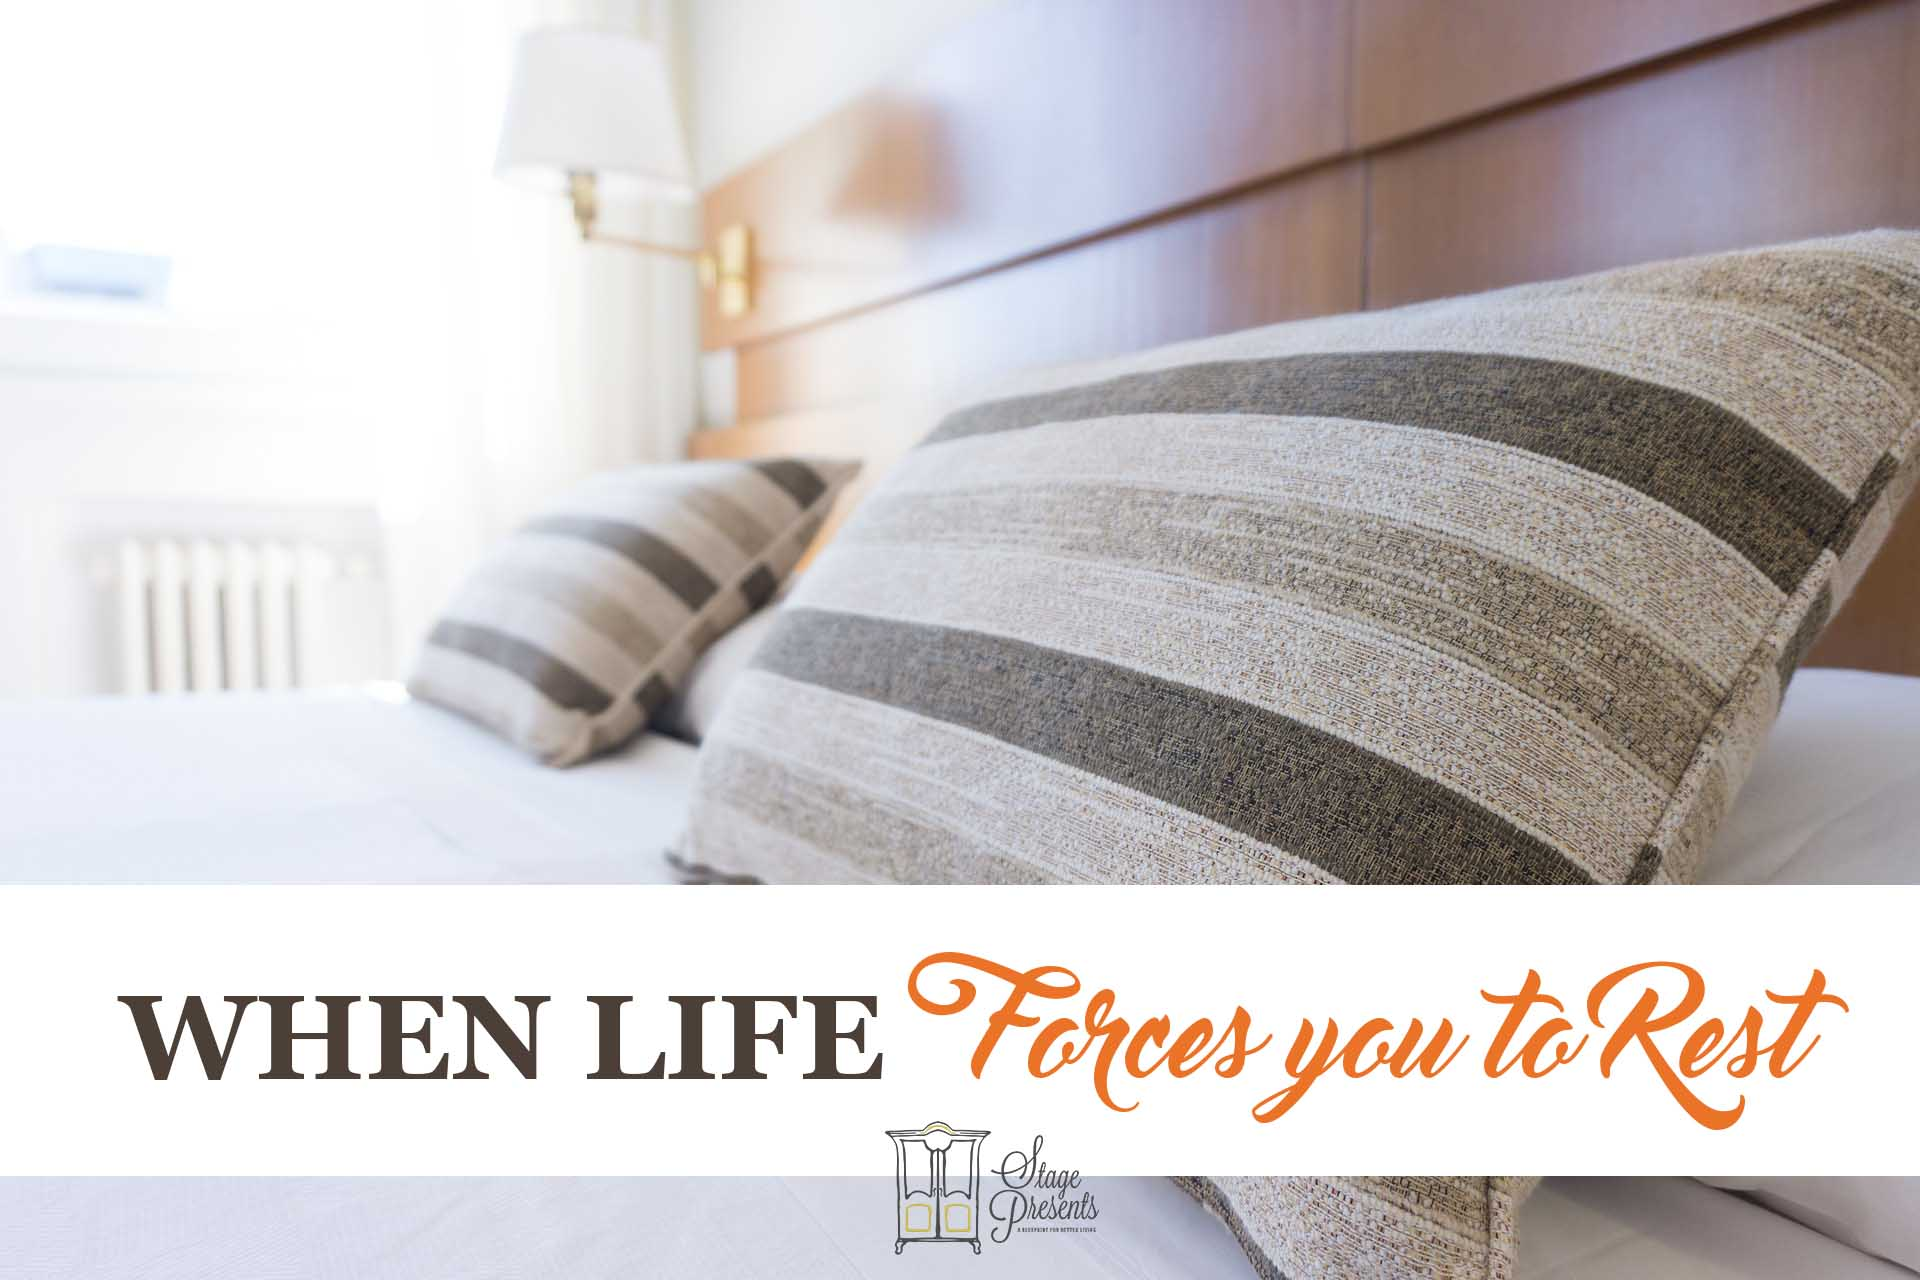 When Life Forces You To Rest - Recovering From An Injury  - stage-presents.com